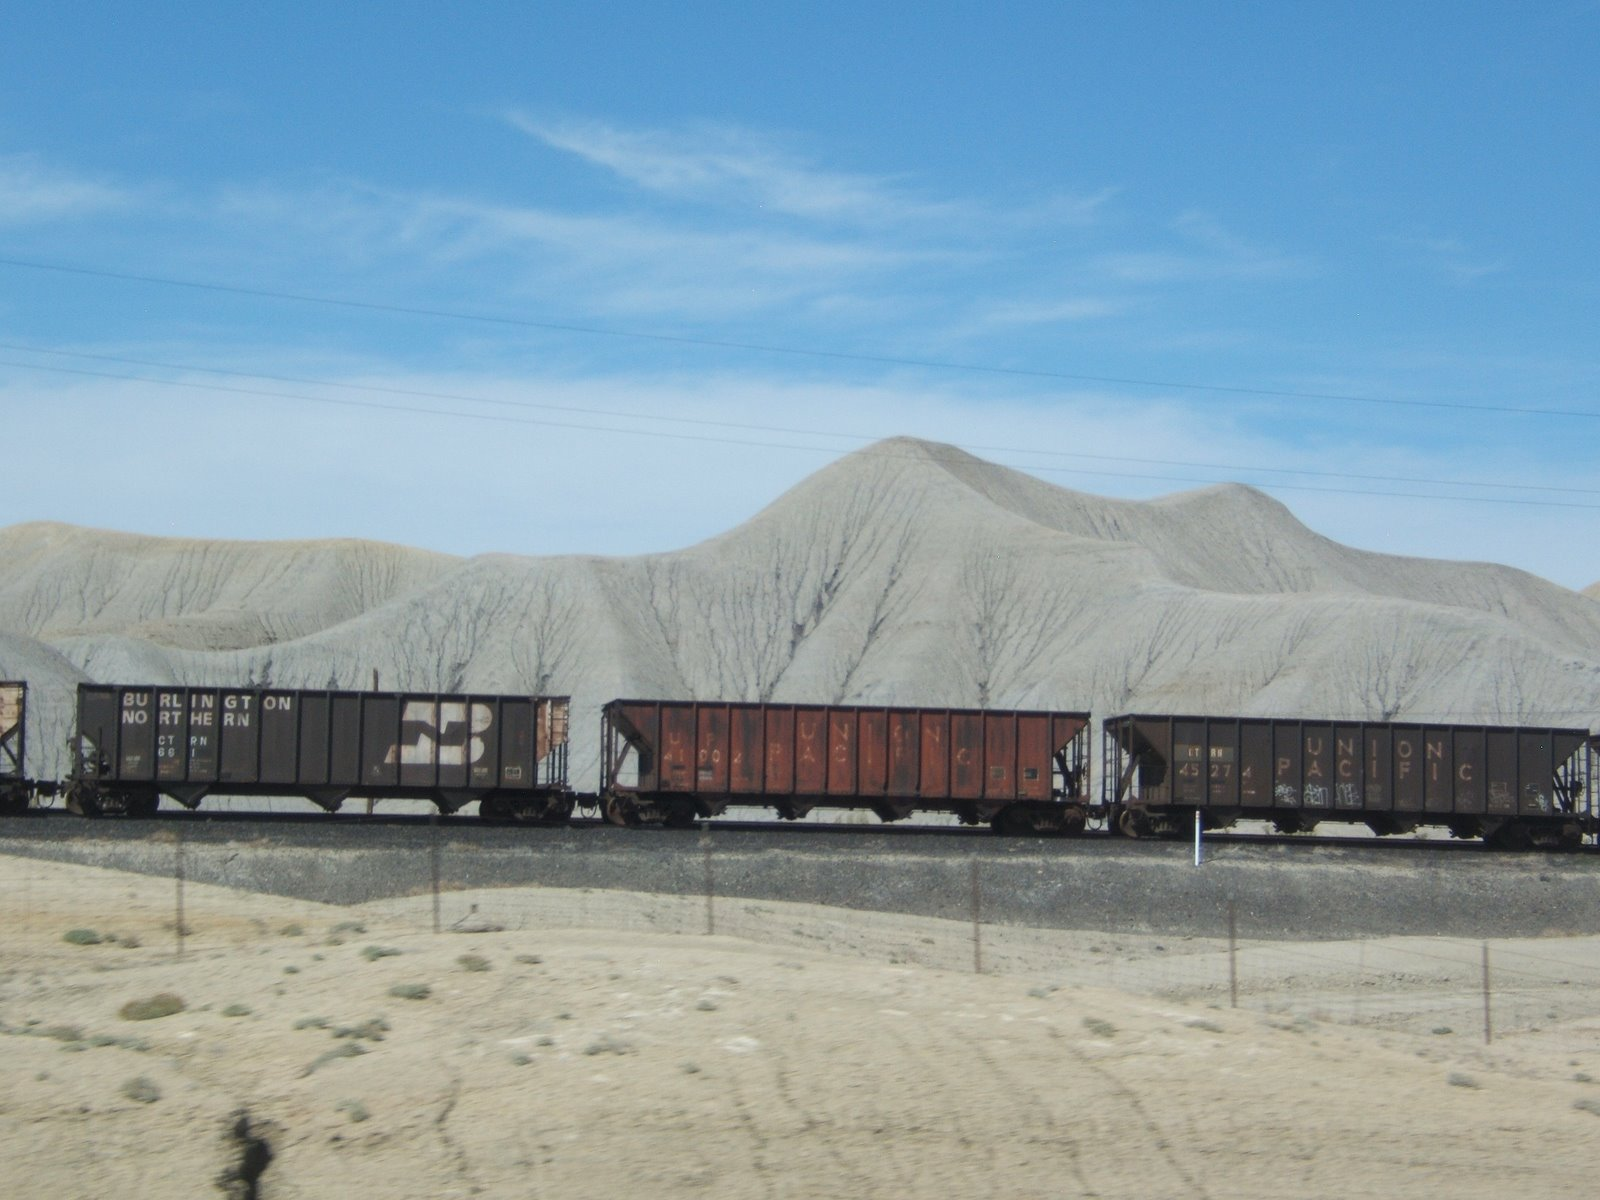 Train cars side tracked. Utah desert, Between Price and Green River. © 2009 Tina M Welter